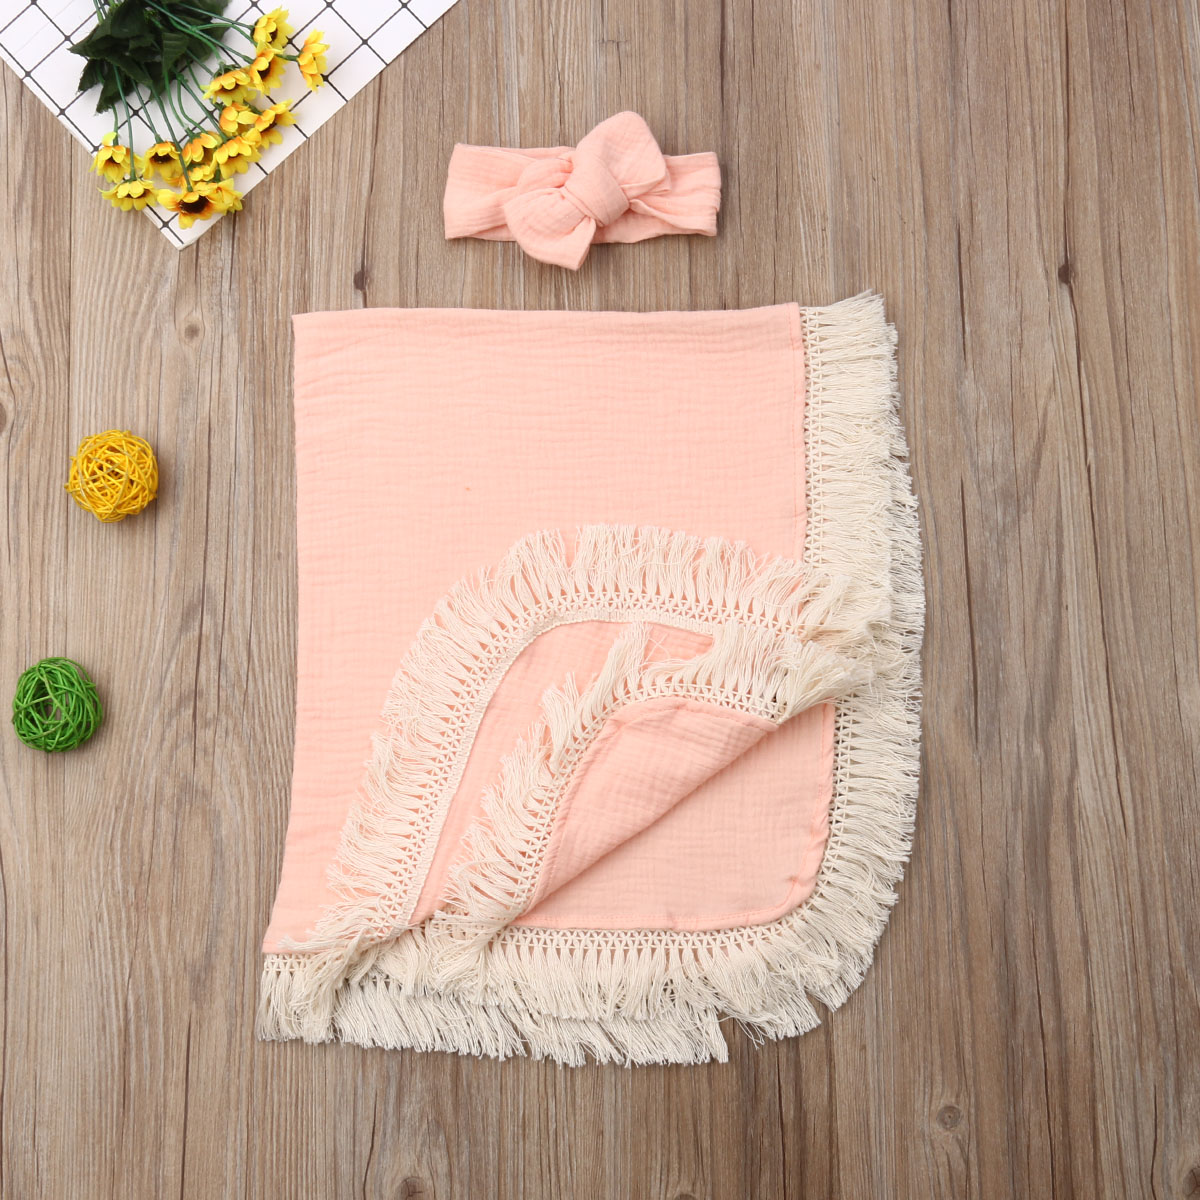 2PCS Newborn Baby Girls Boys Swaddle Wrap Tassels Sleeping Bag+Hat Cotton Outfits Set For Newborn Baby 0-6M